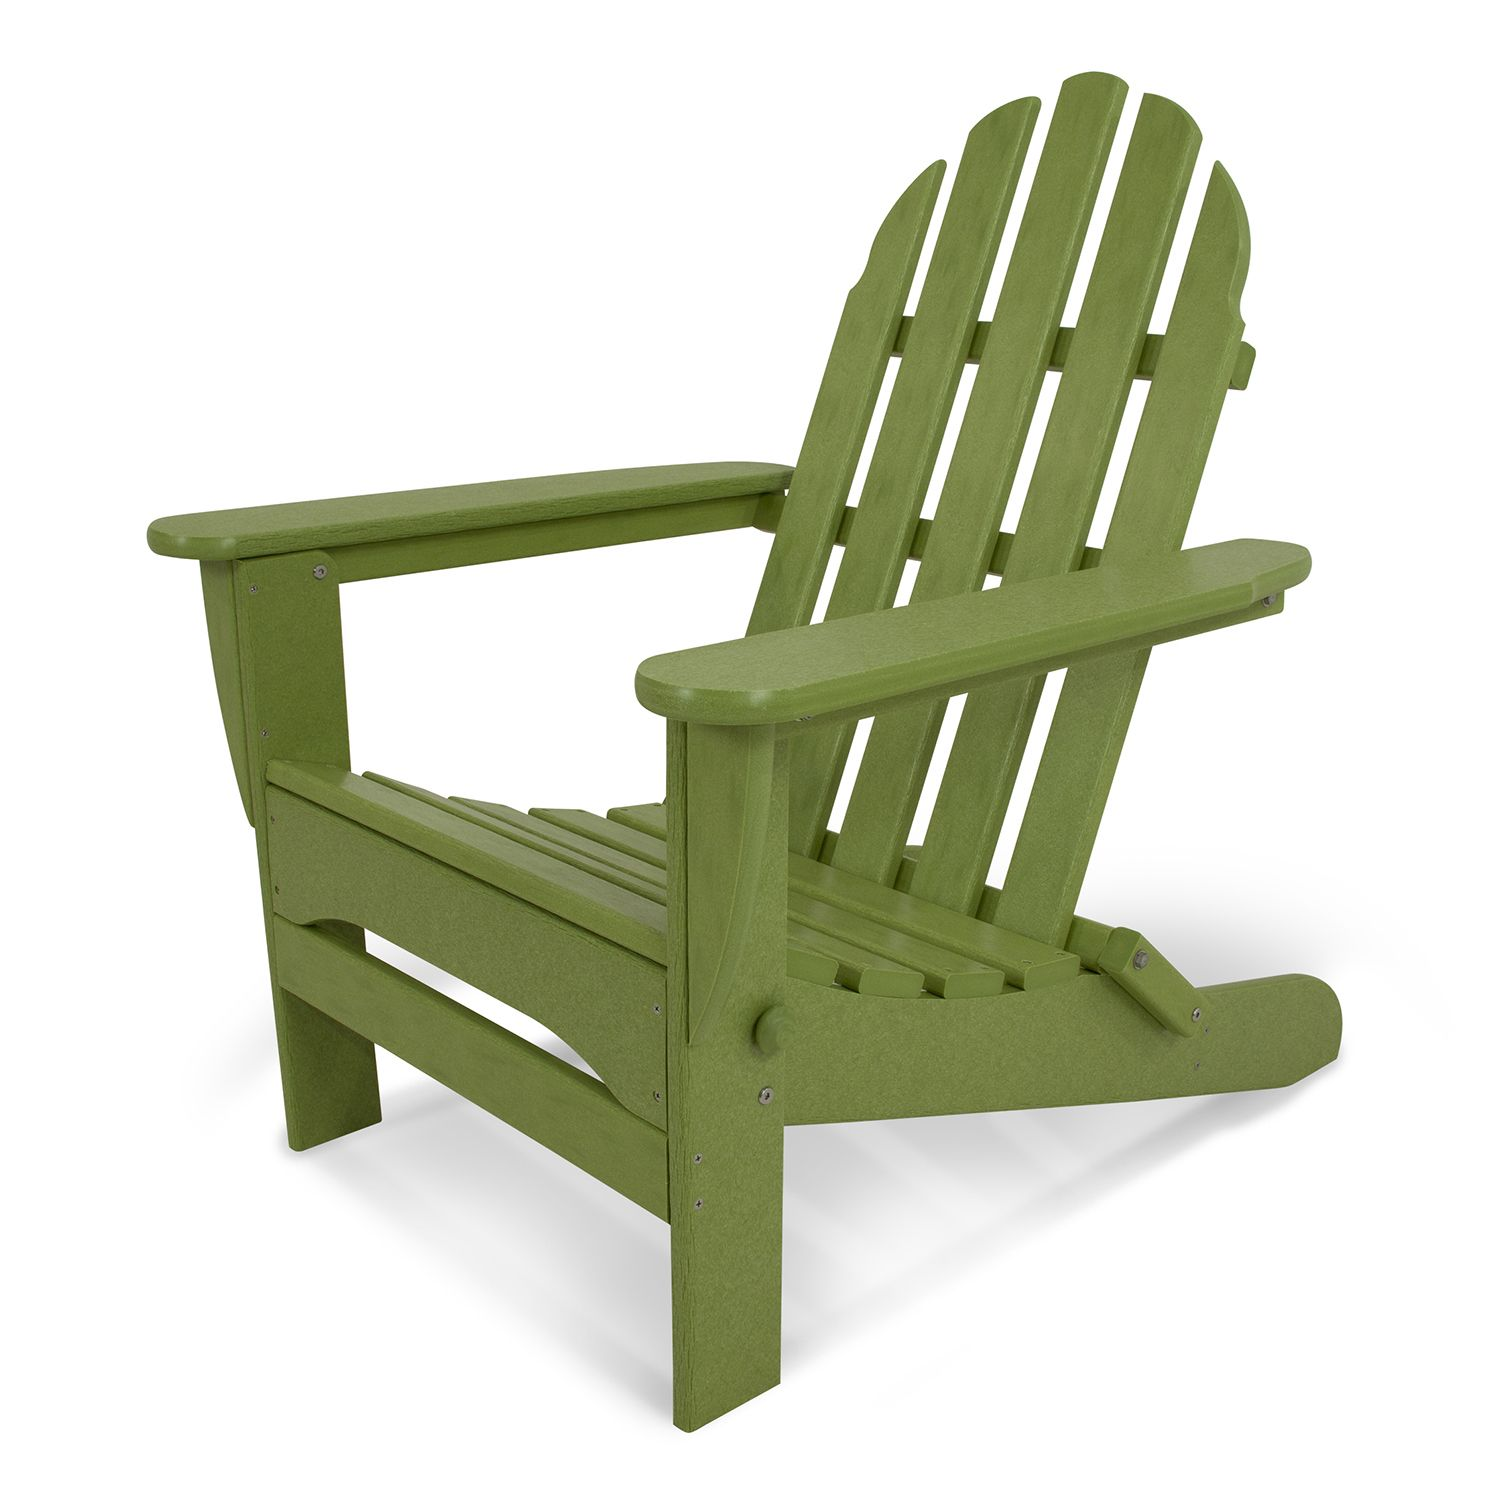 Lovely POLYWOOD Classic Folding Adirondack Chair Outdoor